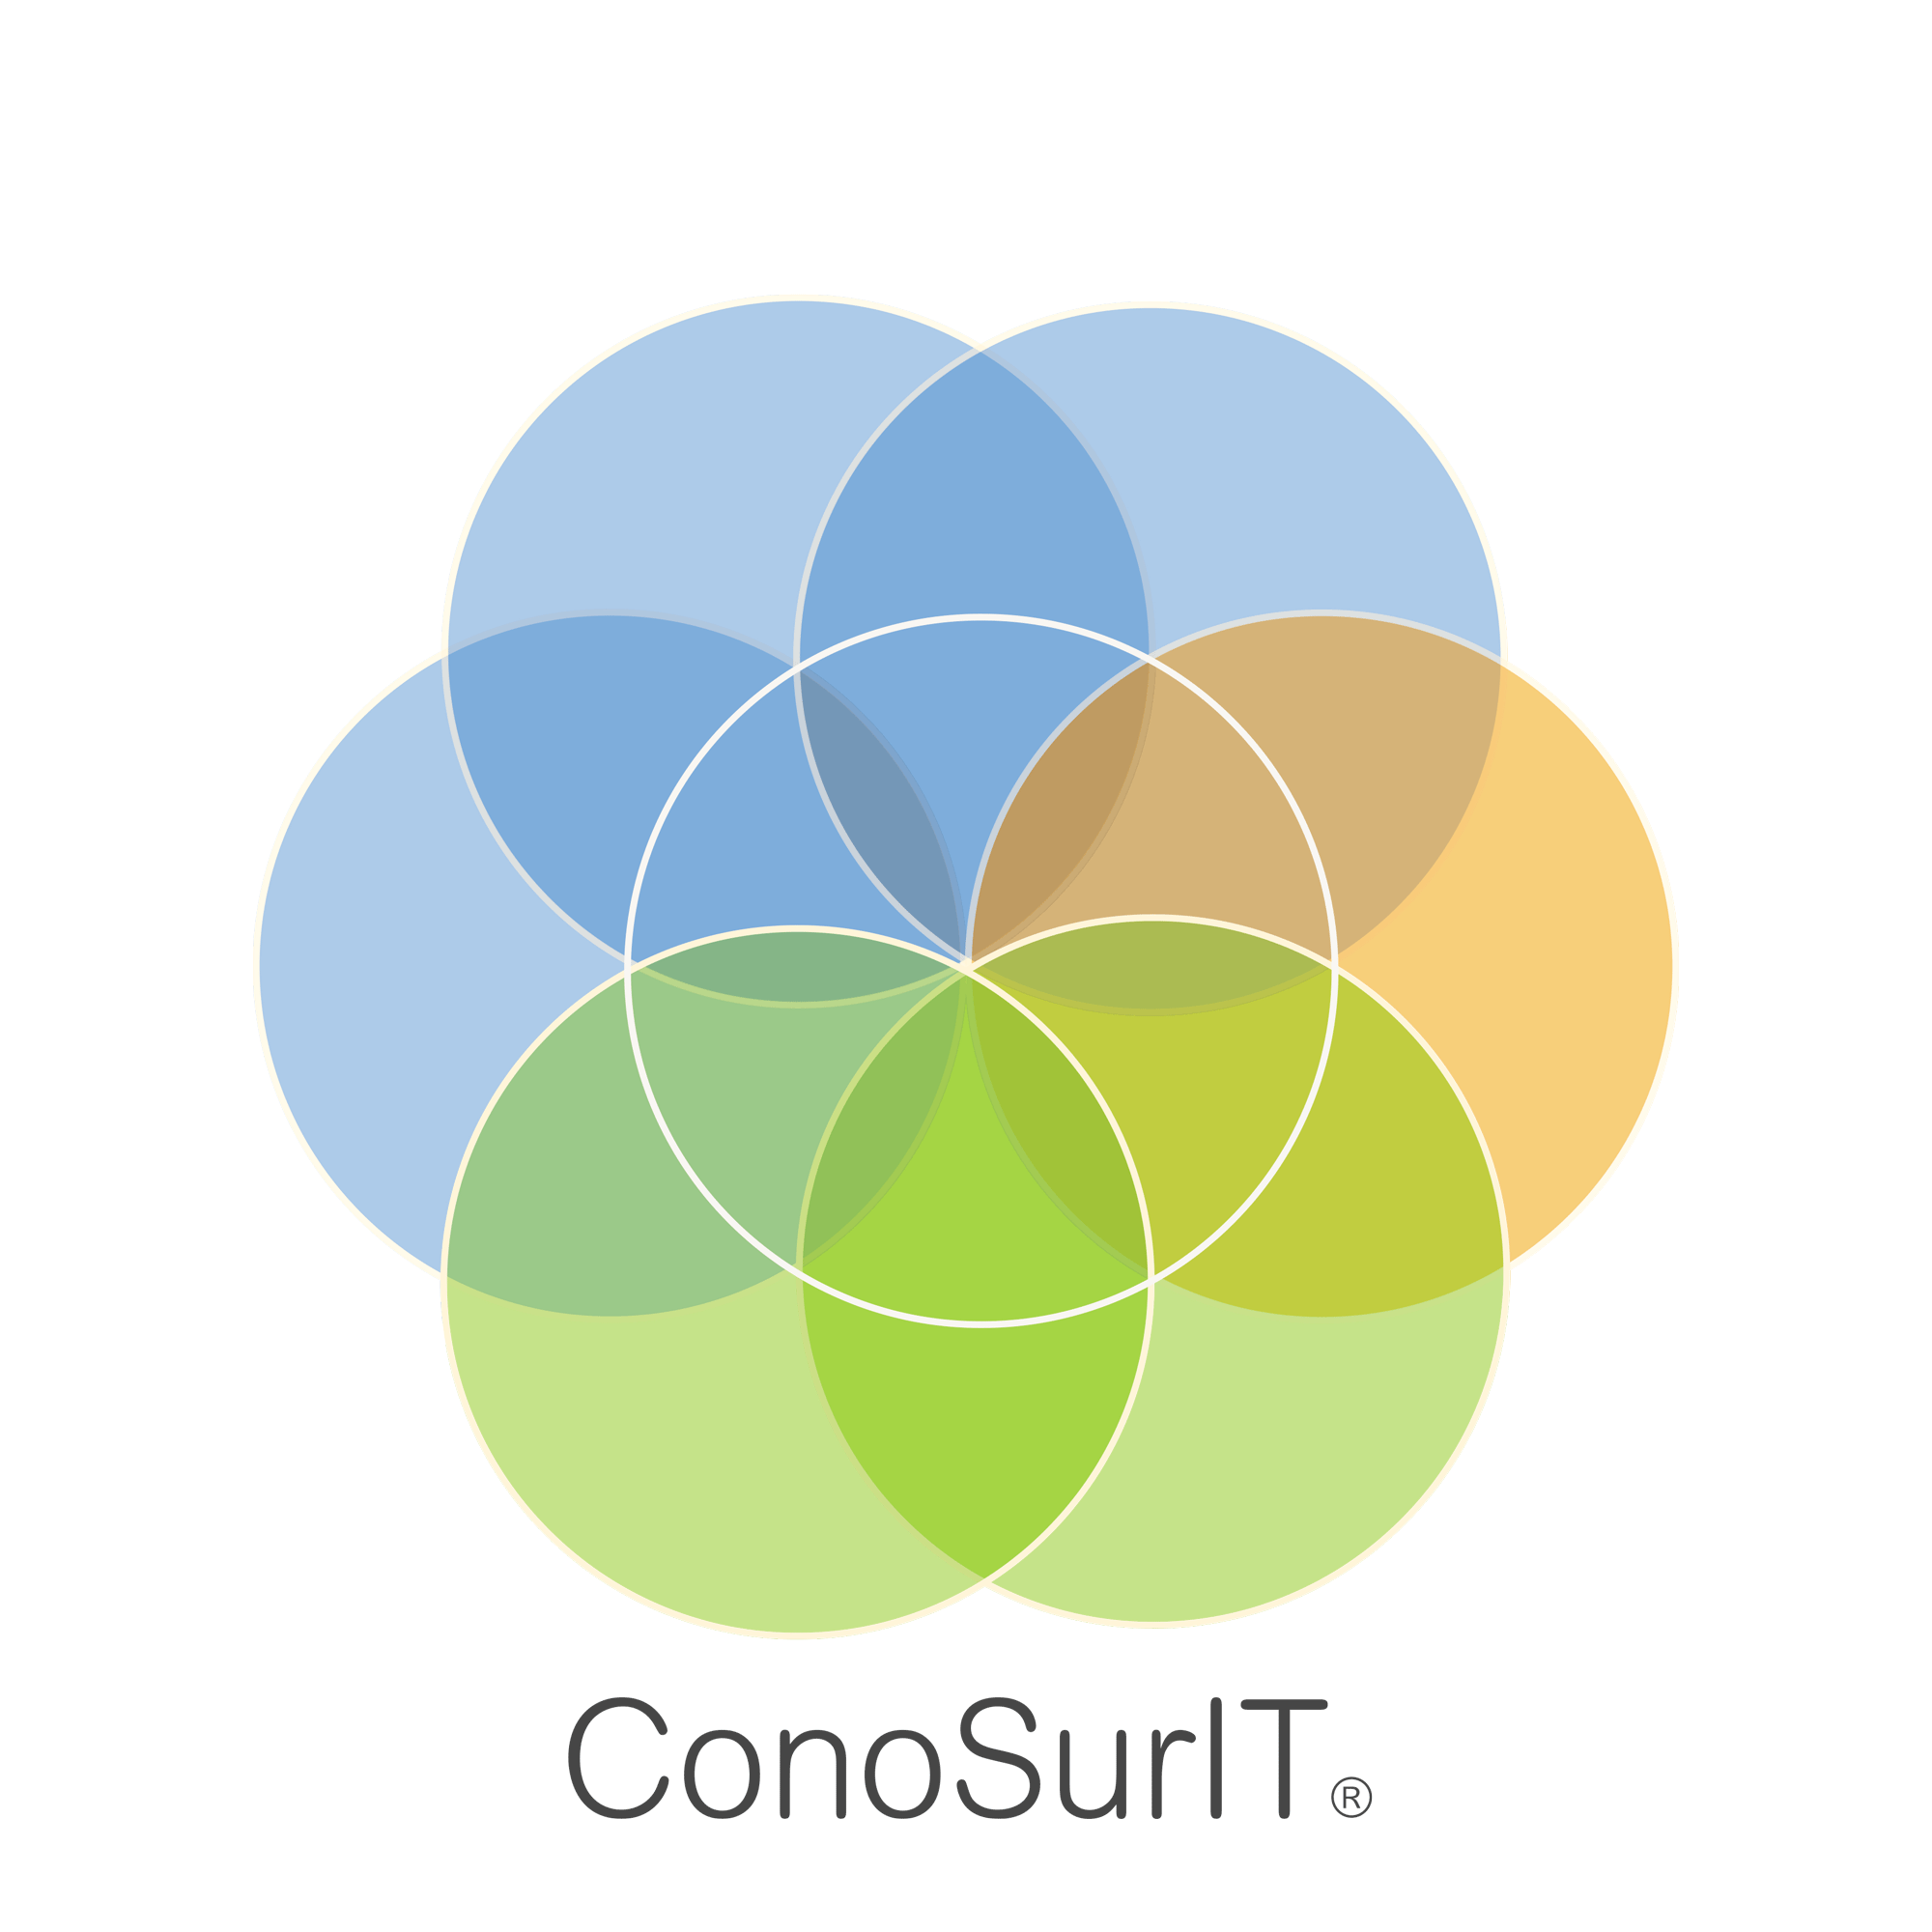 Conosurit